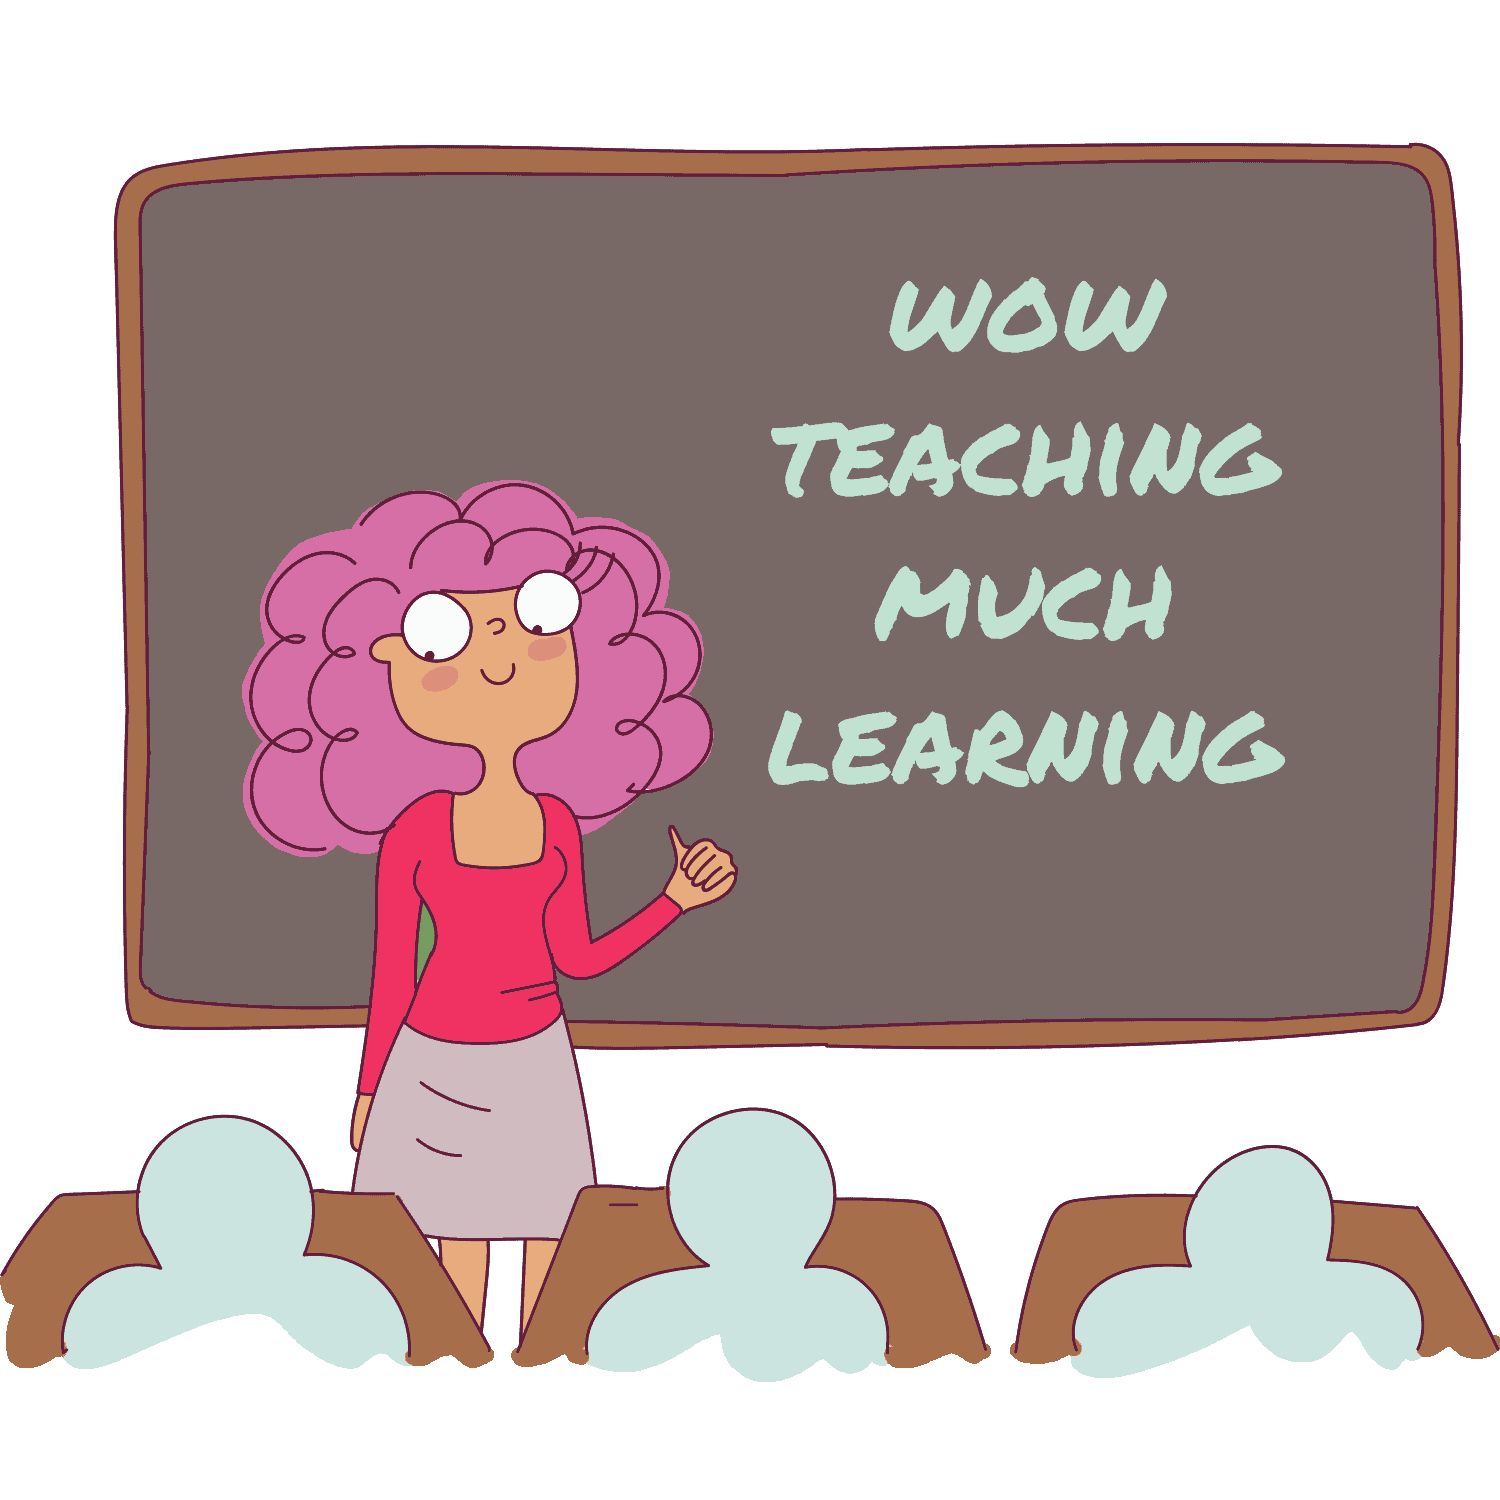 If you have a desire to teach and love recording videos, creating online courses is perfect for you!